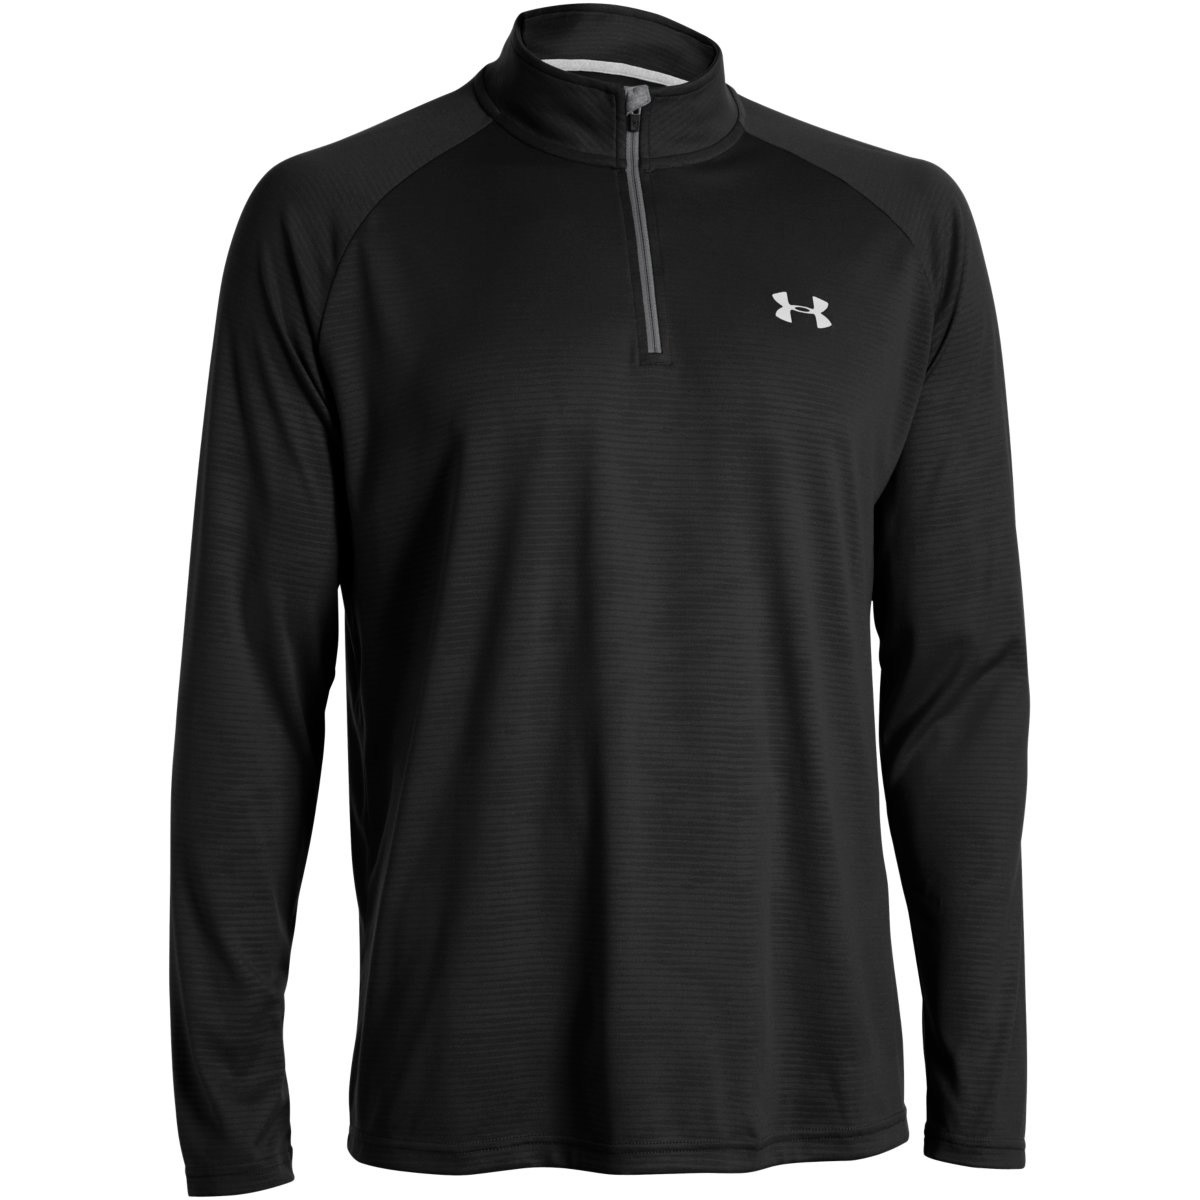 Under Armour Men's Tech 1/4 Zip - Black, M